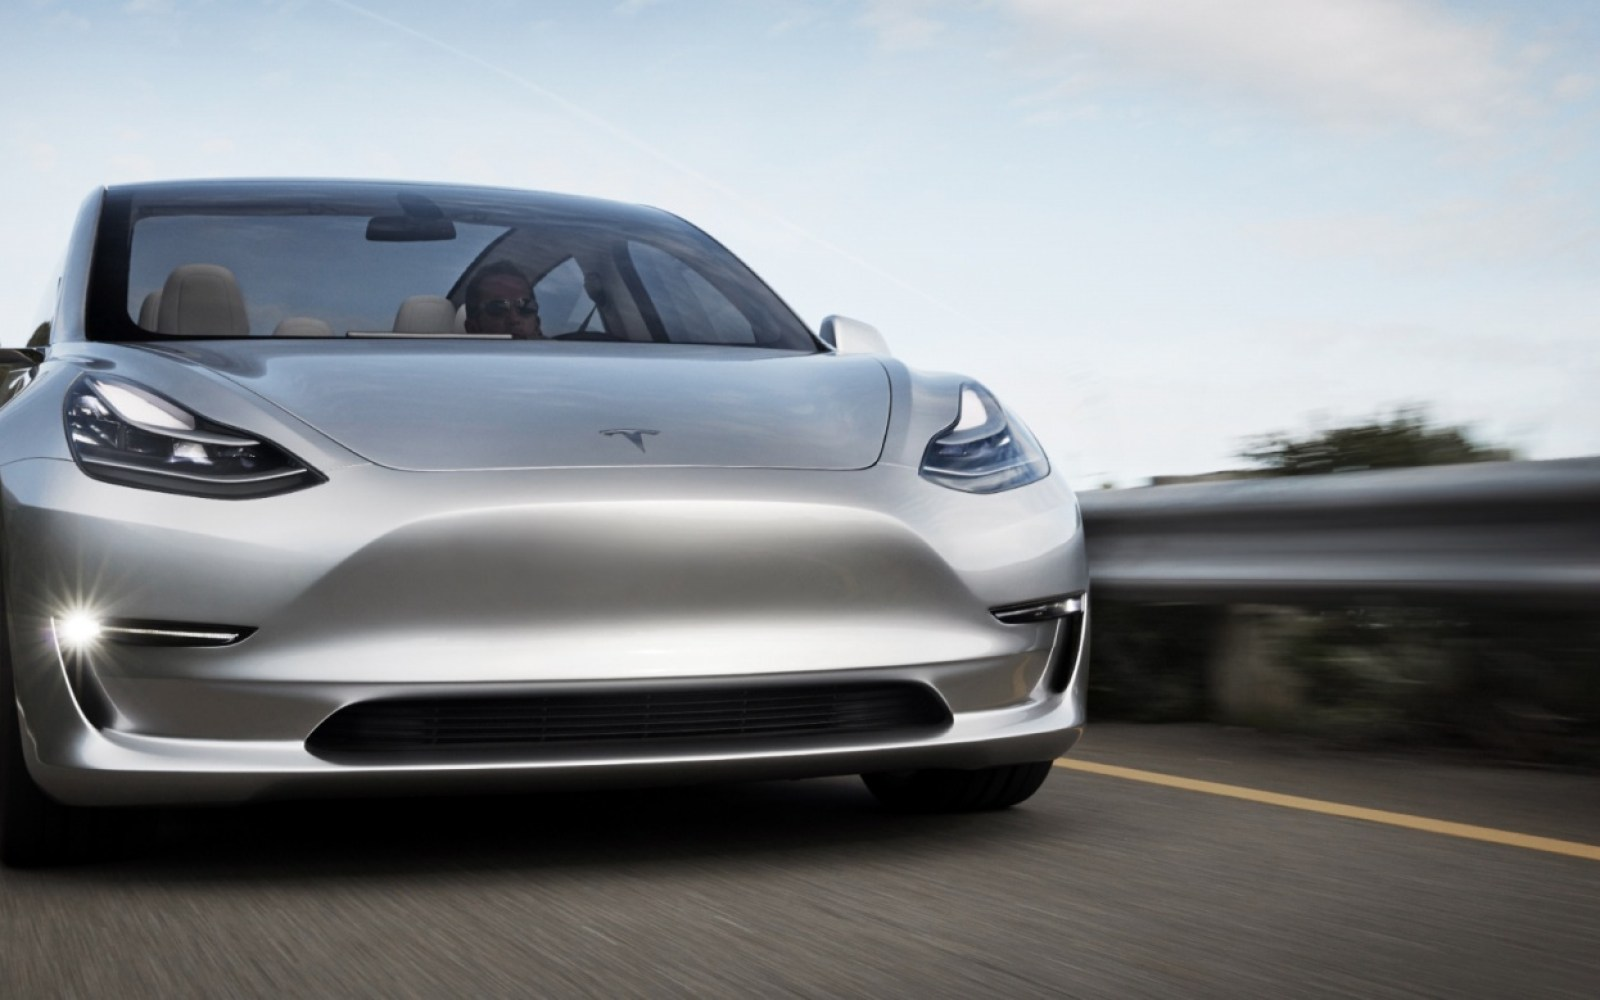 Tesla aims for the Model 3 to be the first mass-market autonomous car